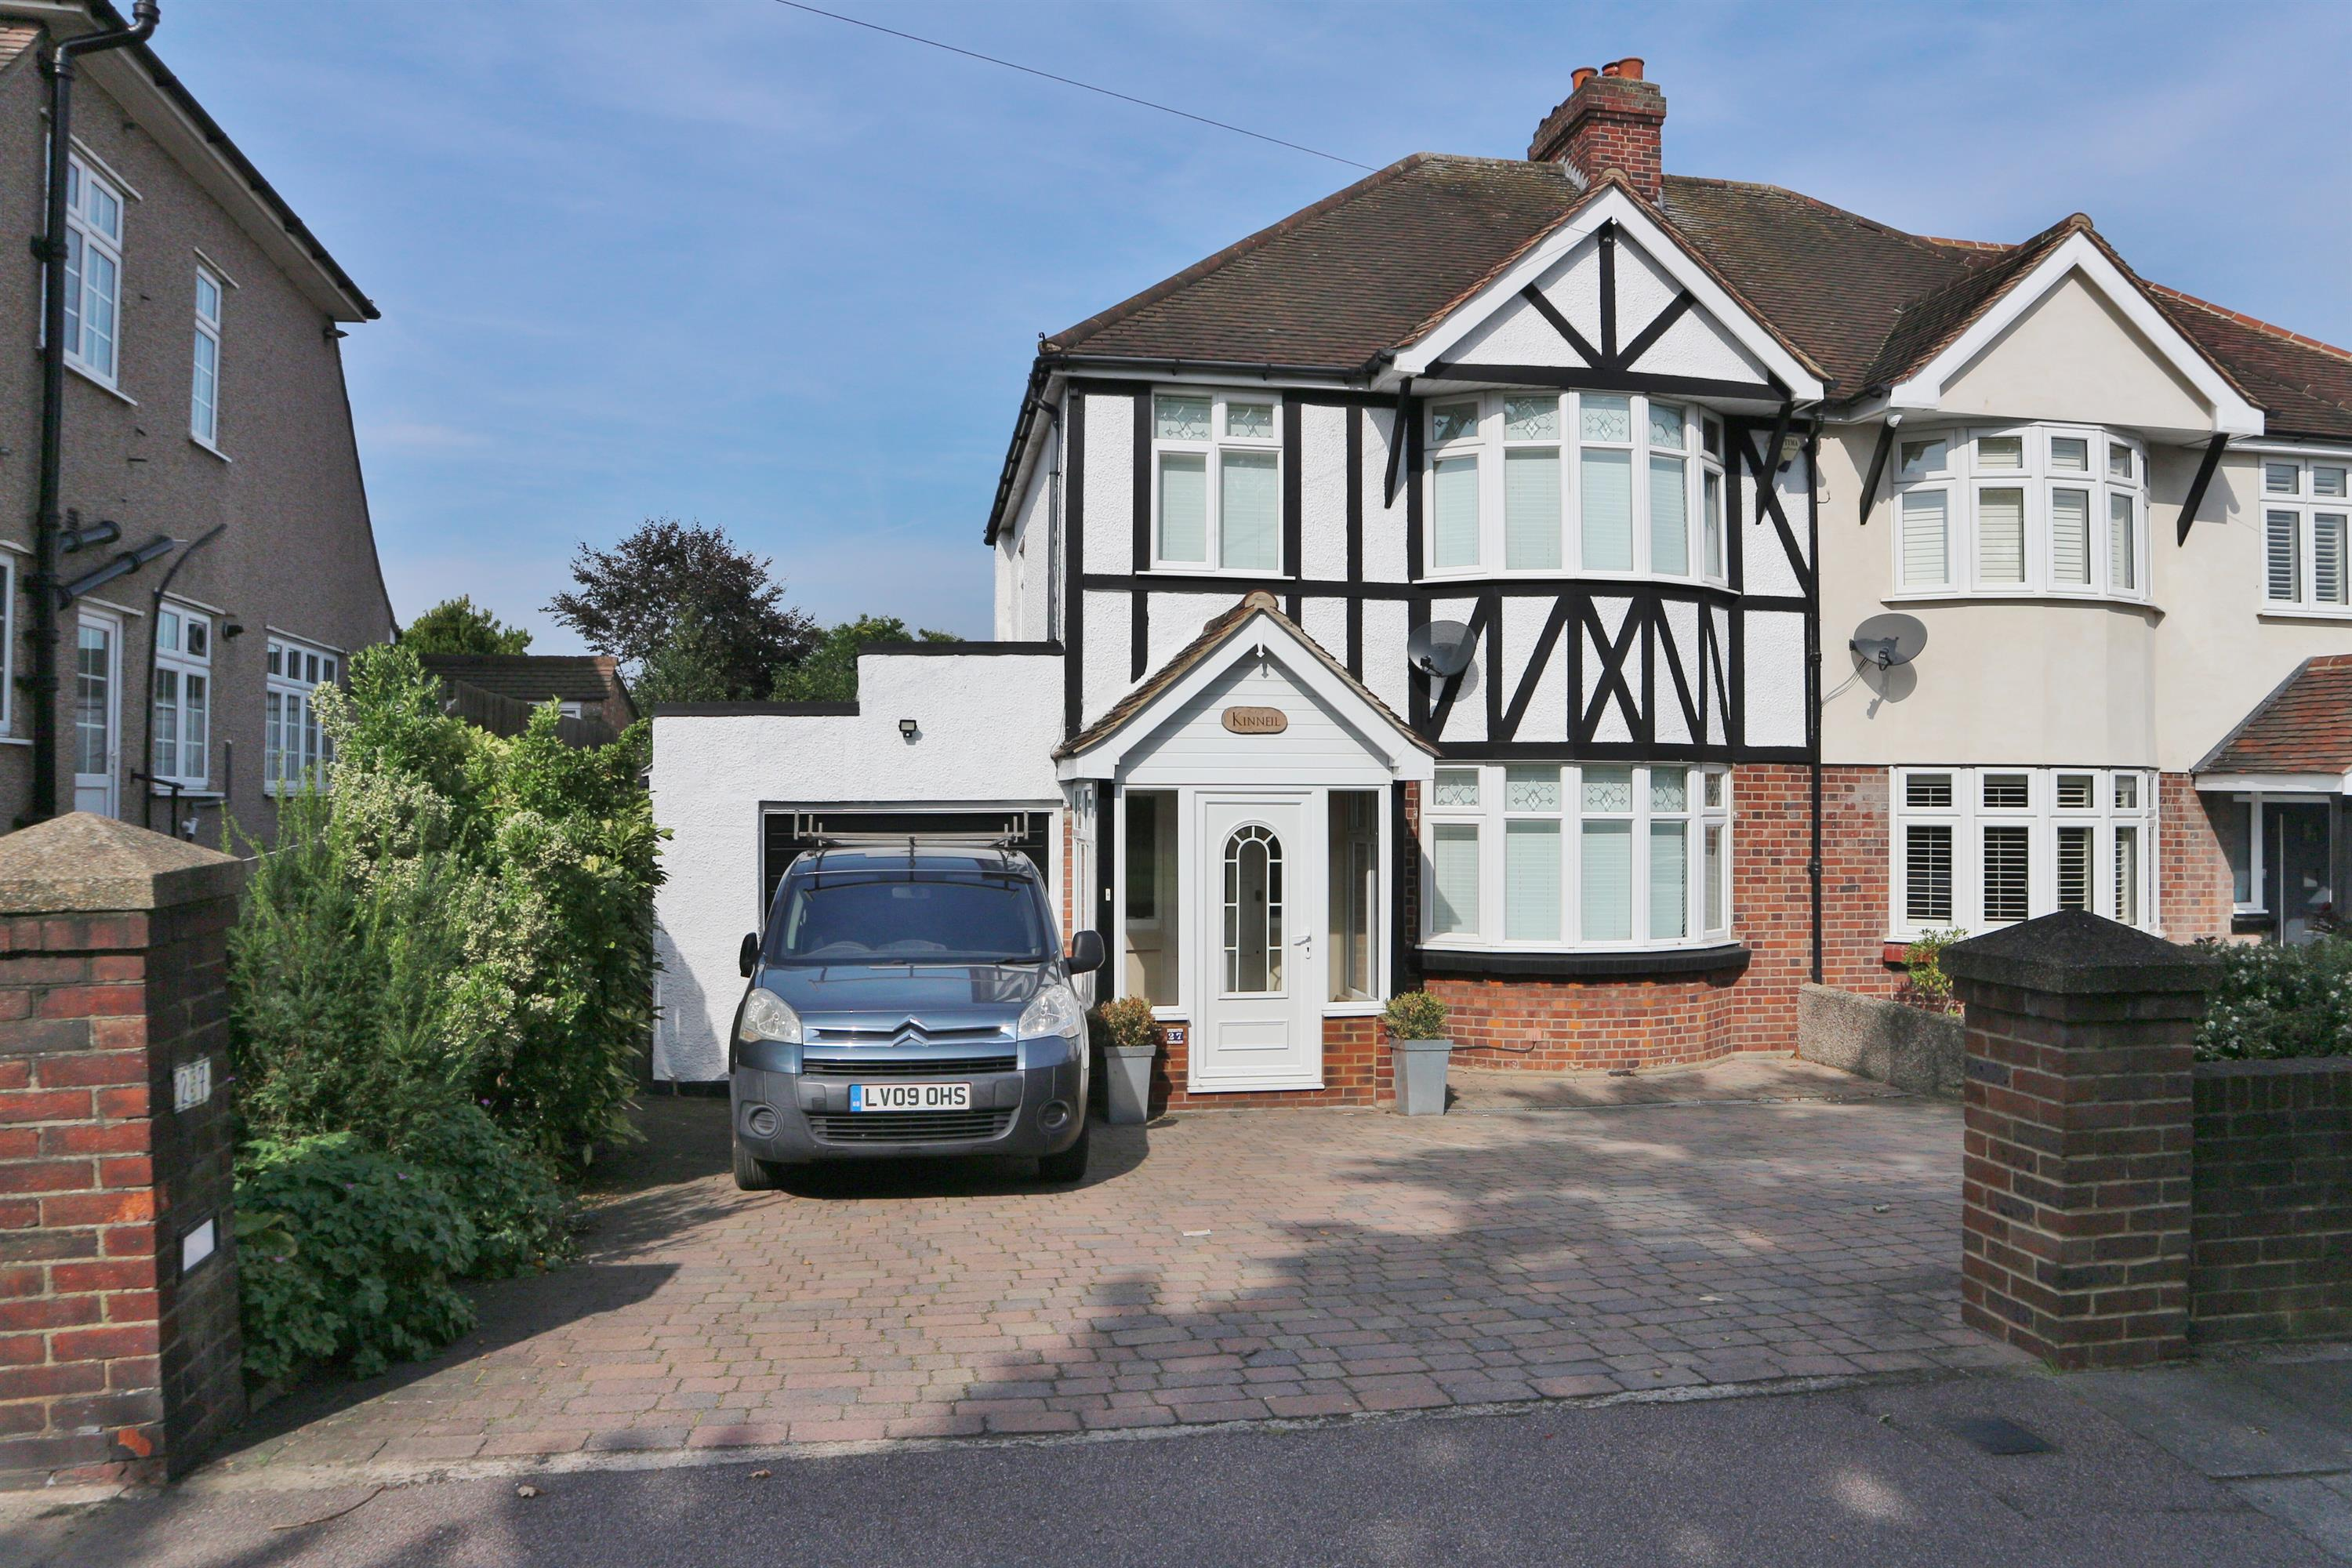 Manor Road, Crayford, Kent, DA1 4ET